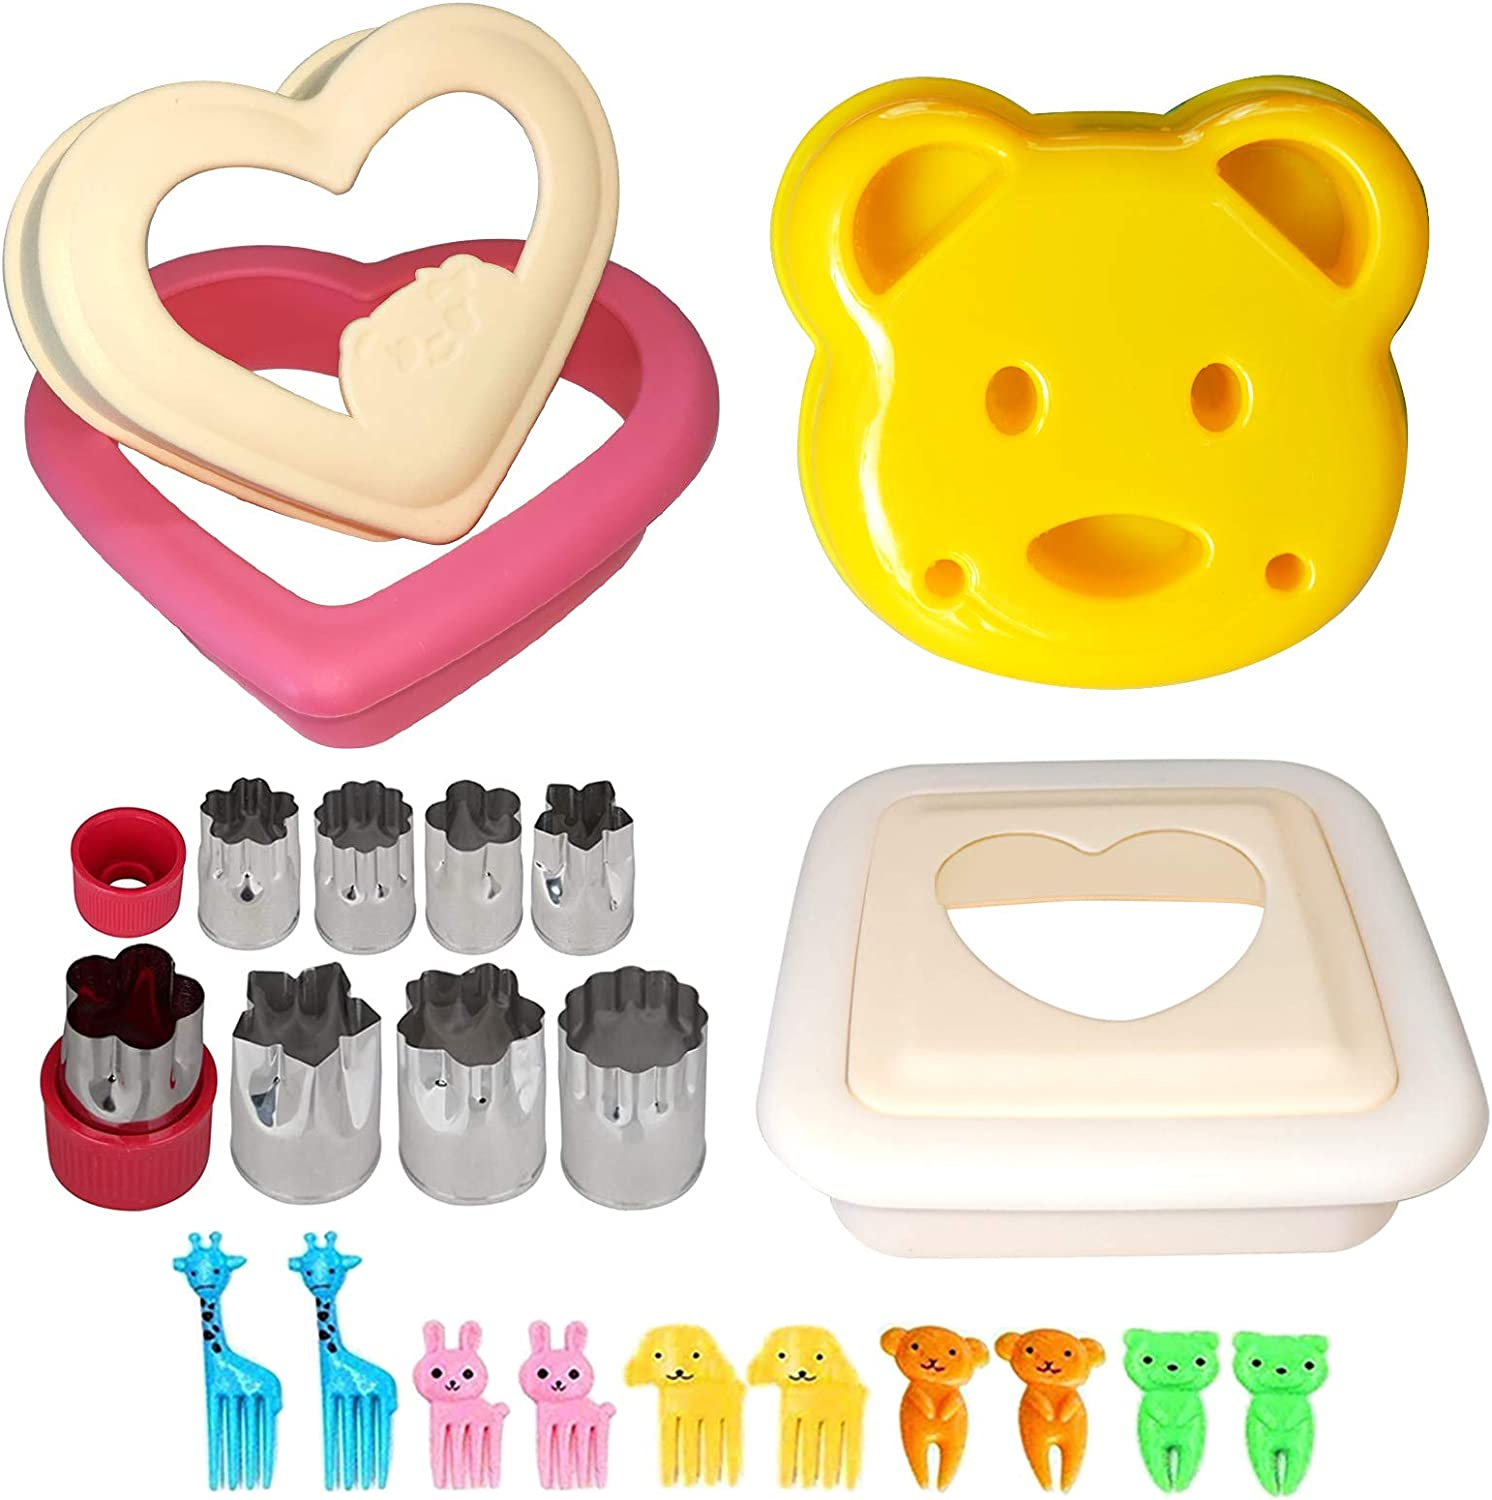 Sandwich Cutter and Sealer, Uncrustable Sandwich Maker - Bread Crust Remover with Mini Cookie Vegetable Fruit Cutters and Food Pick forks, Perfect for Boys and Girls Kids Lunchbox and Bento Box